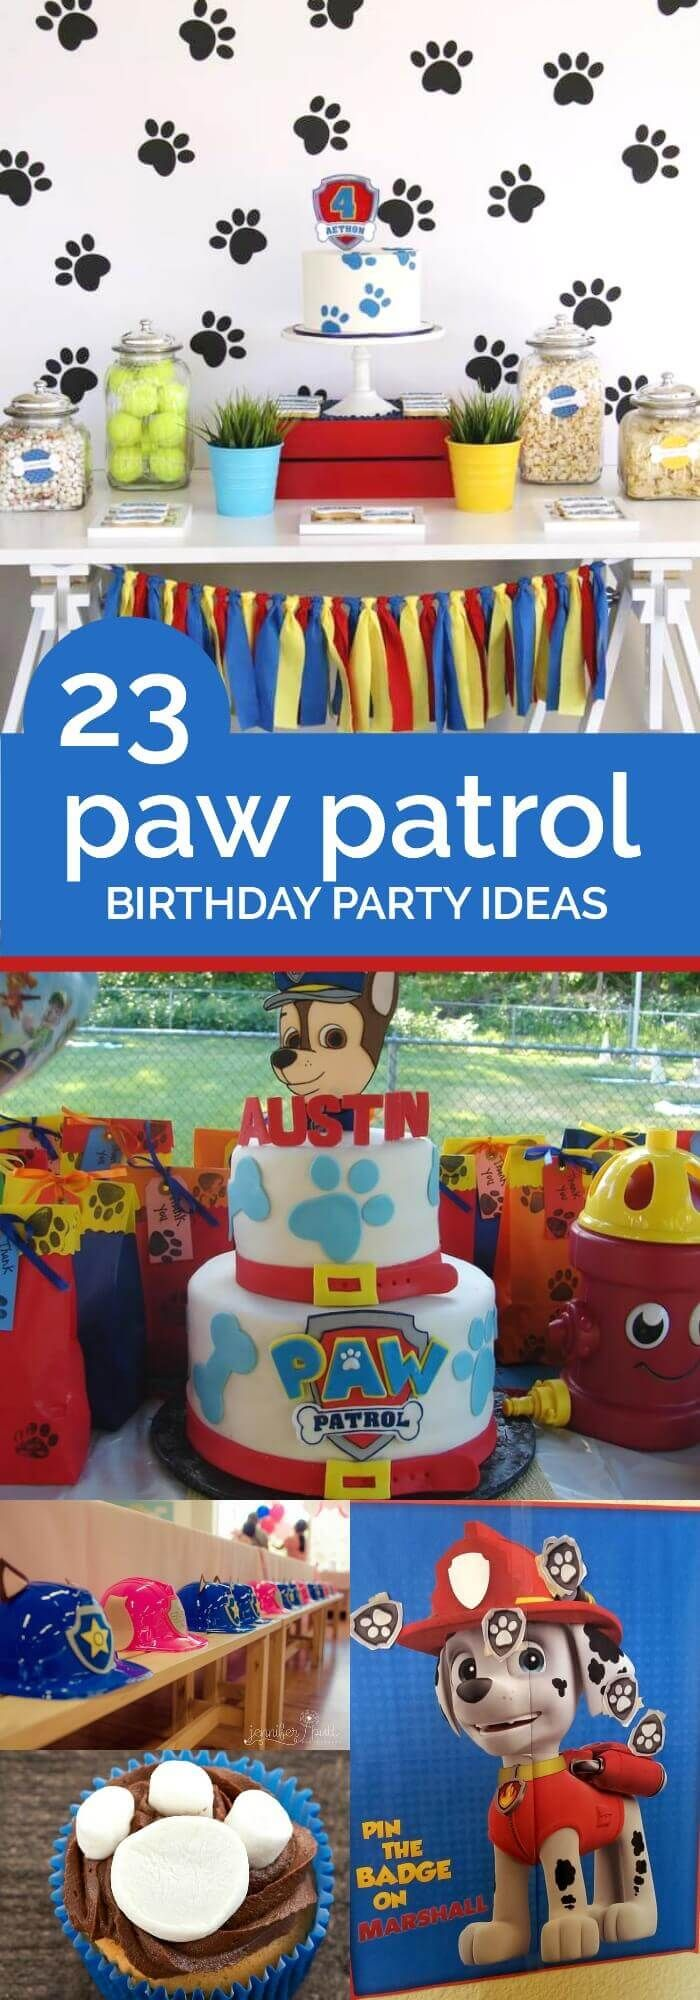 3rd birthday party ideas for boy octonauts 23 paw patrol birthday party ideas all kinds of